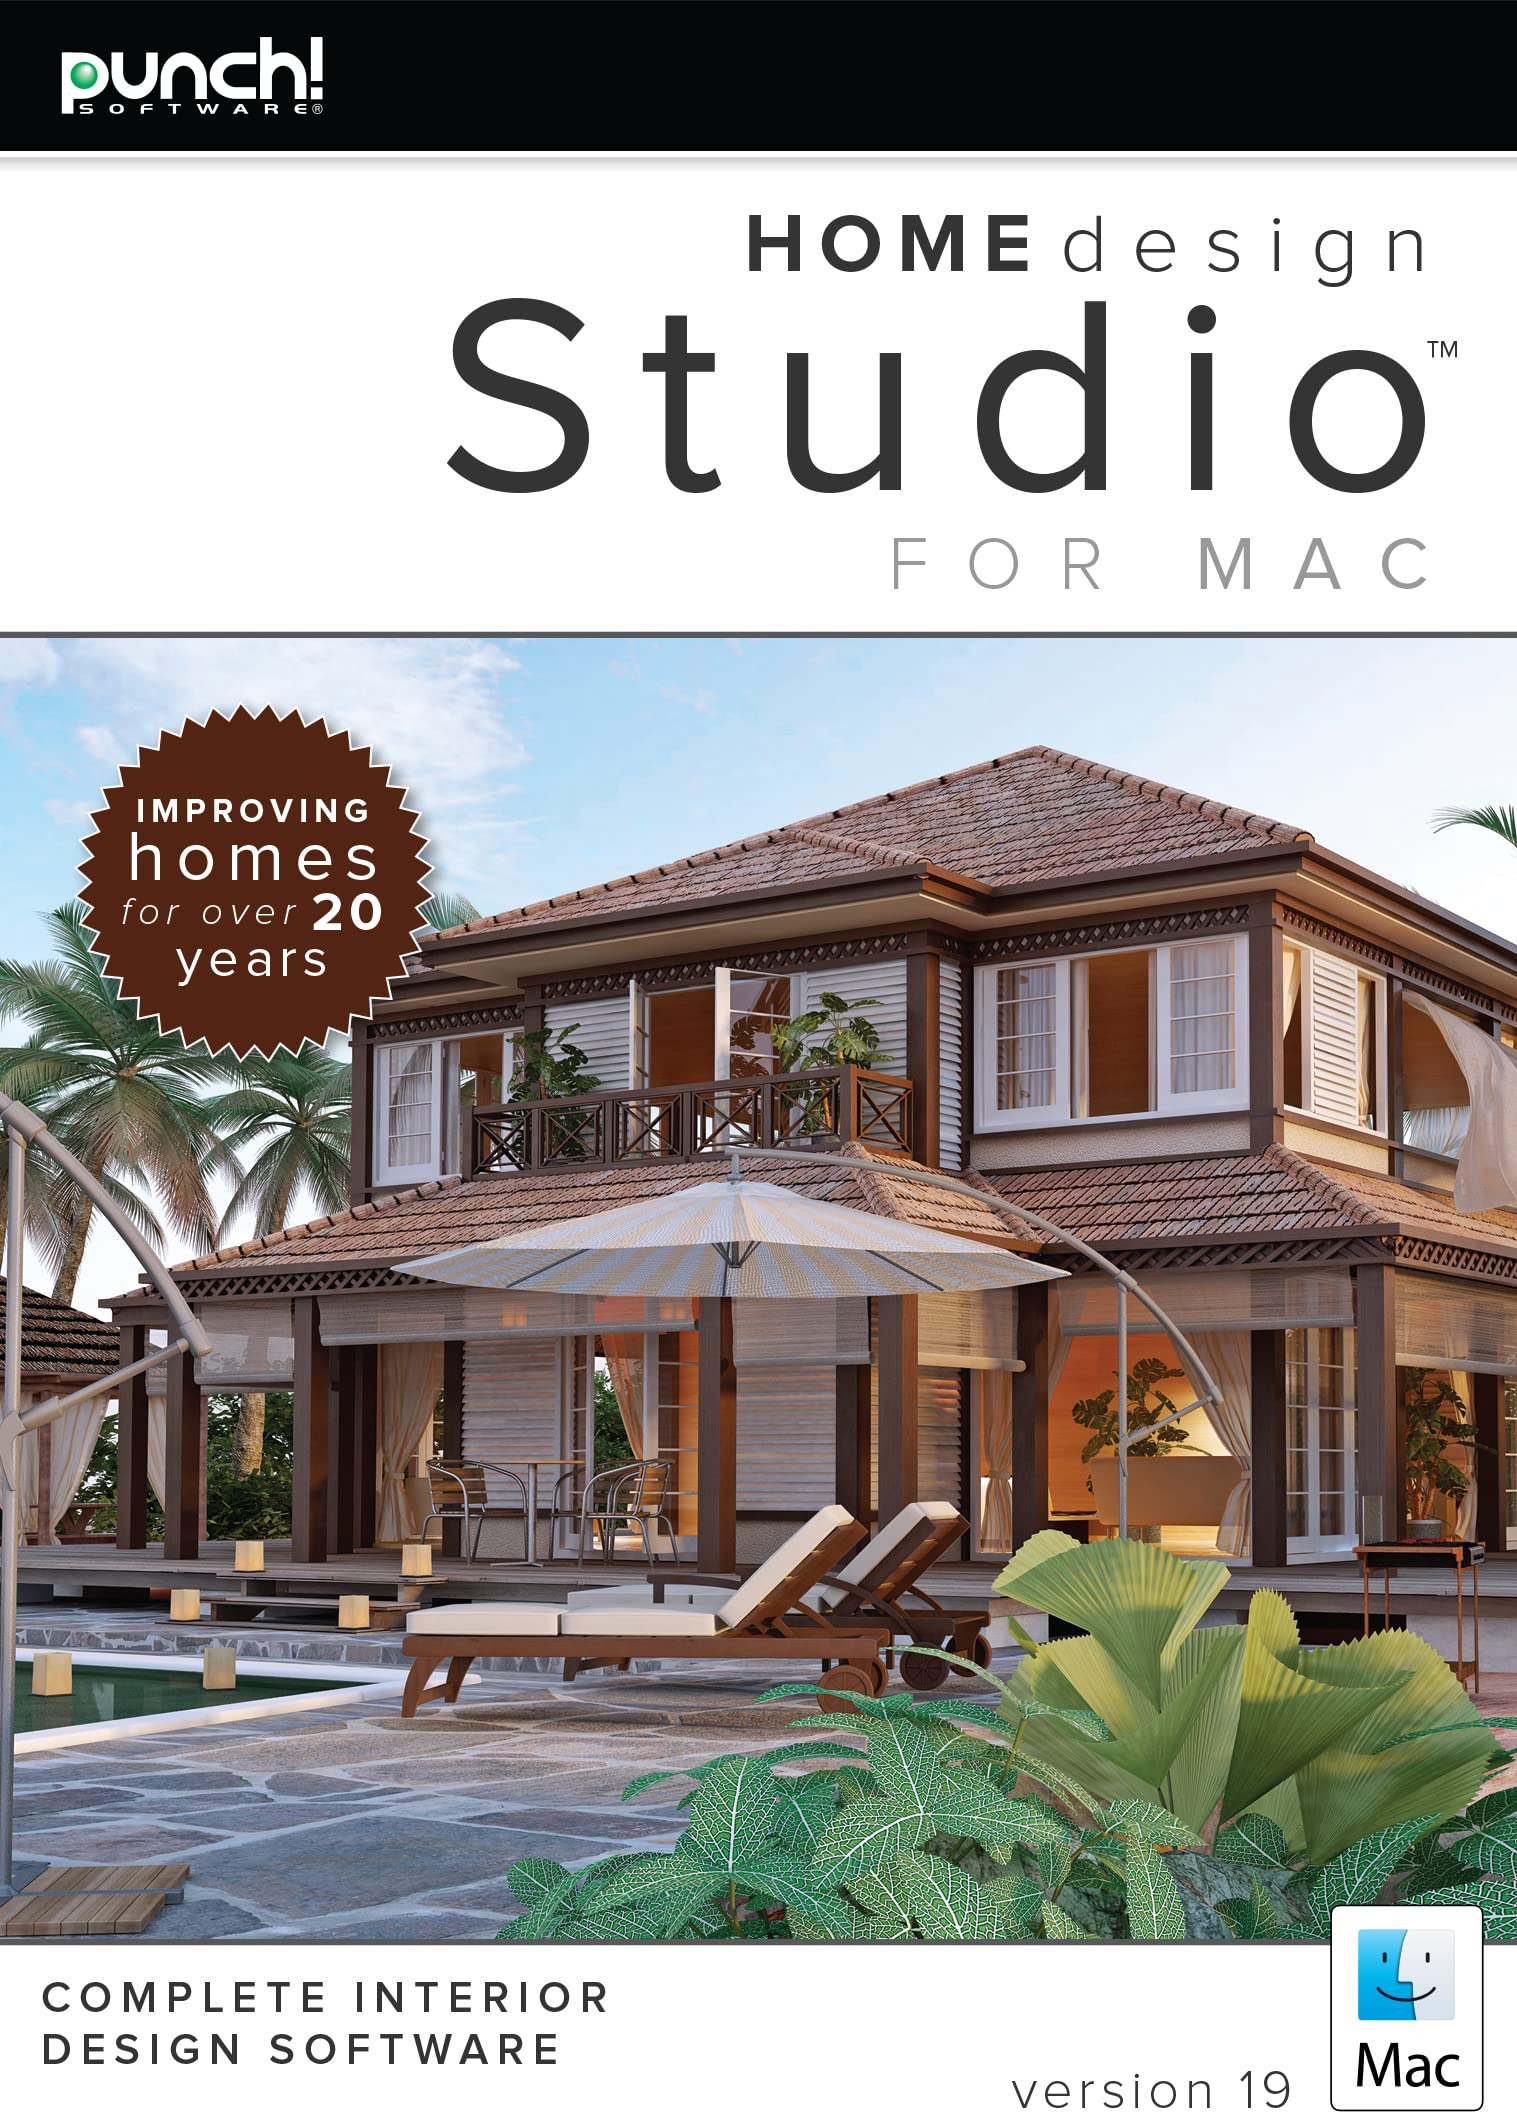 House Planning software Mac Luxury Amazon Punch Home Design Studio for Mac V19 [download